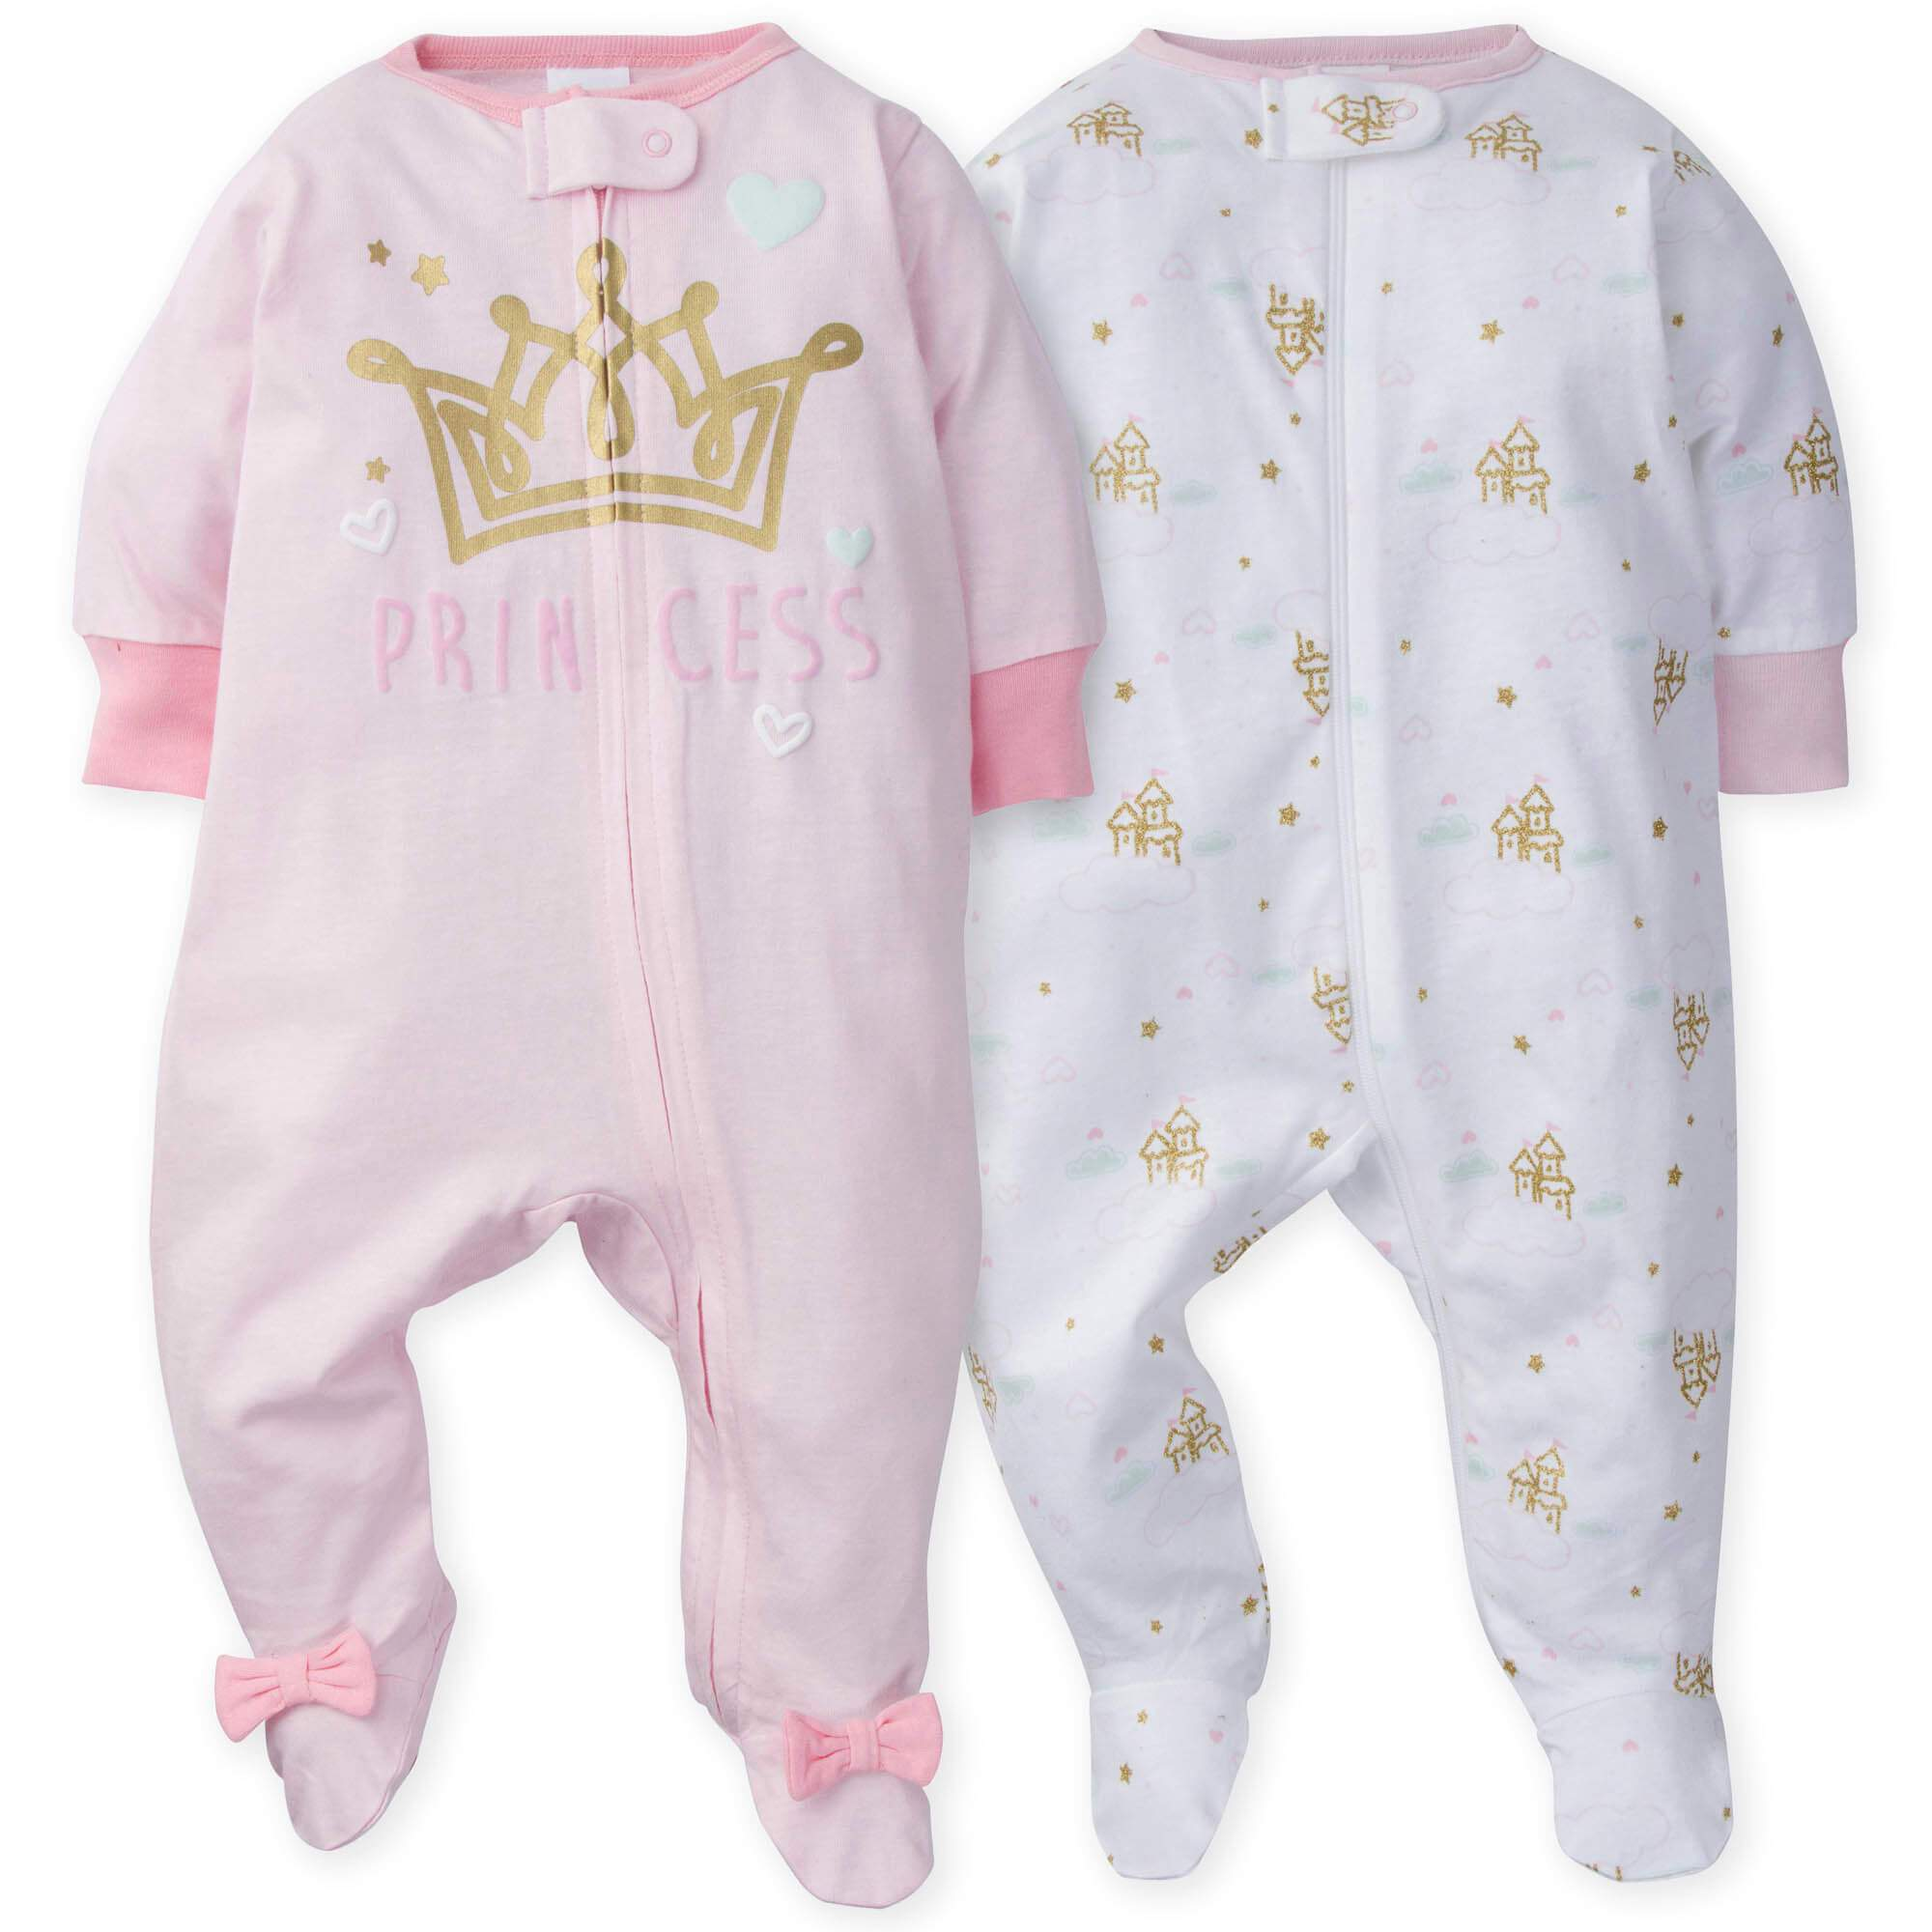 2-Pack Girls Princess Castle Sleep N' Play